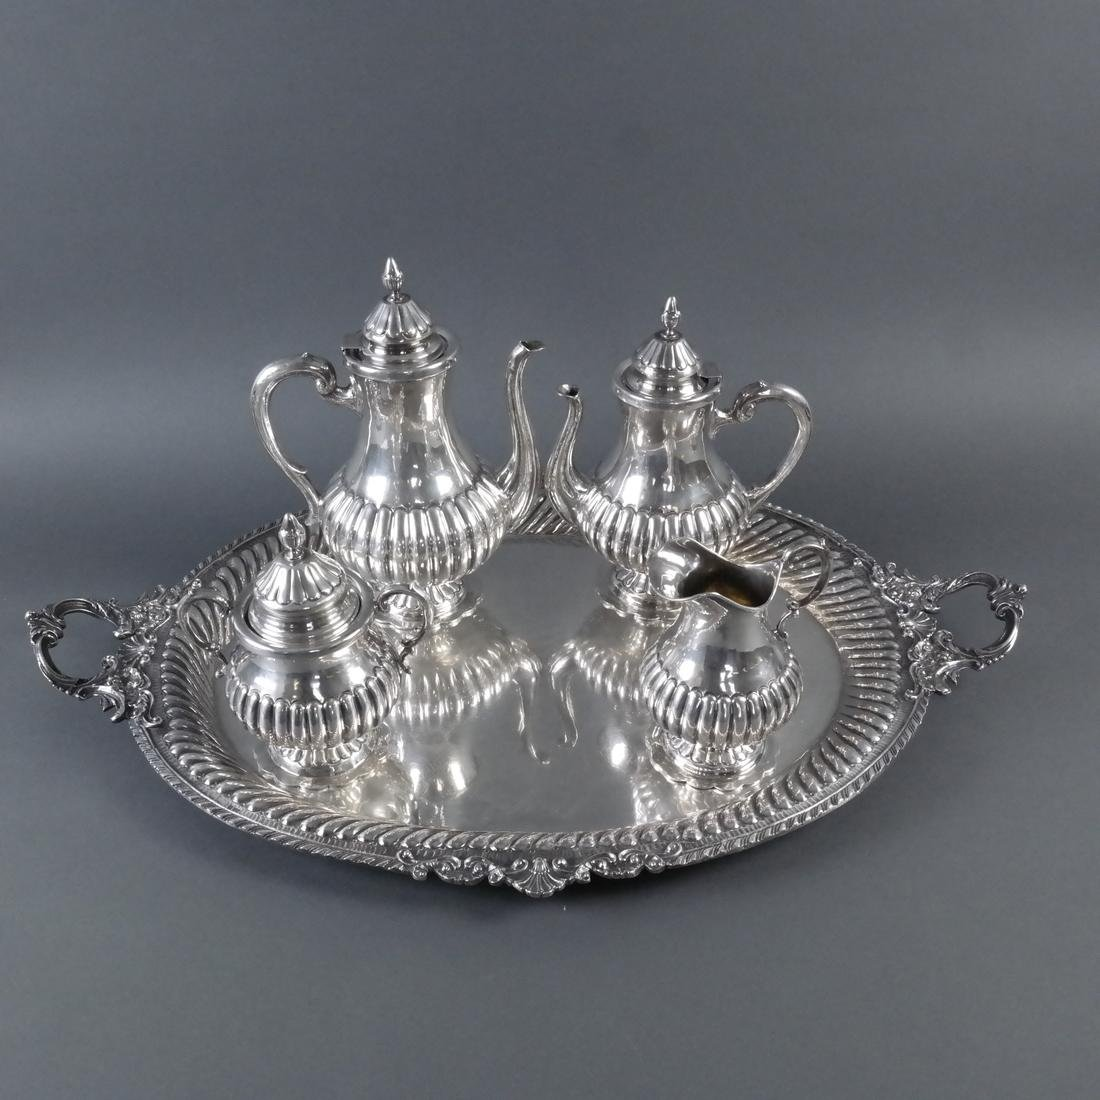 5-Piece .900 Ornate Silver Tea Service